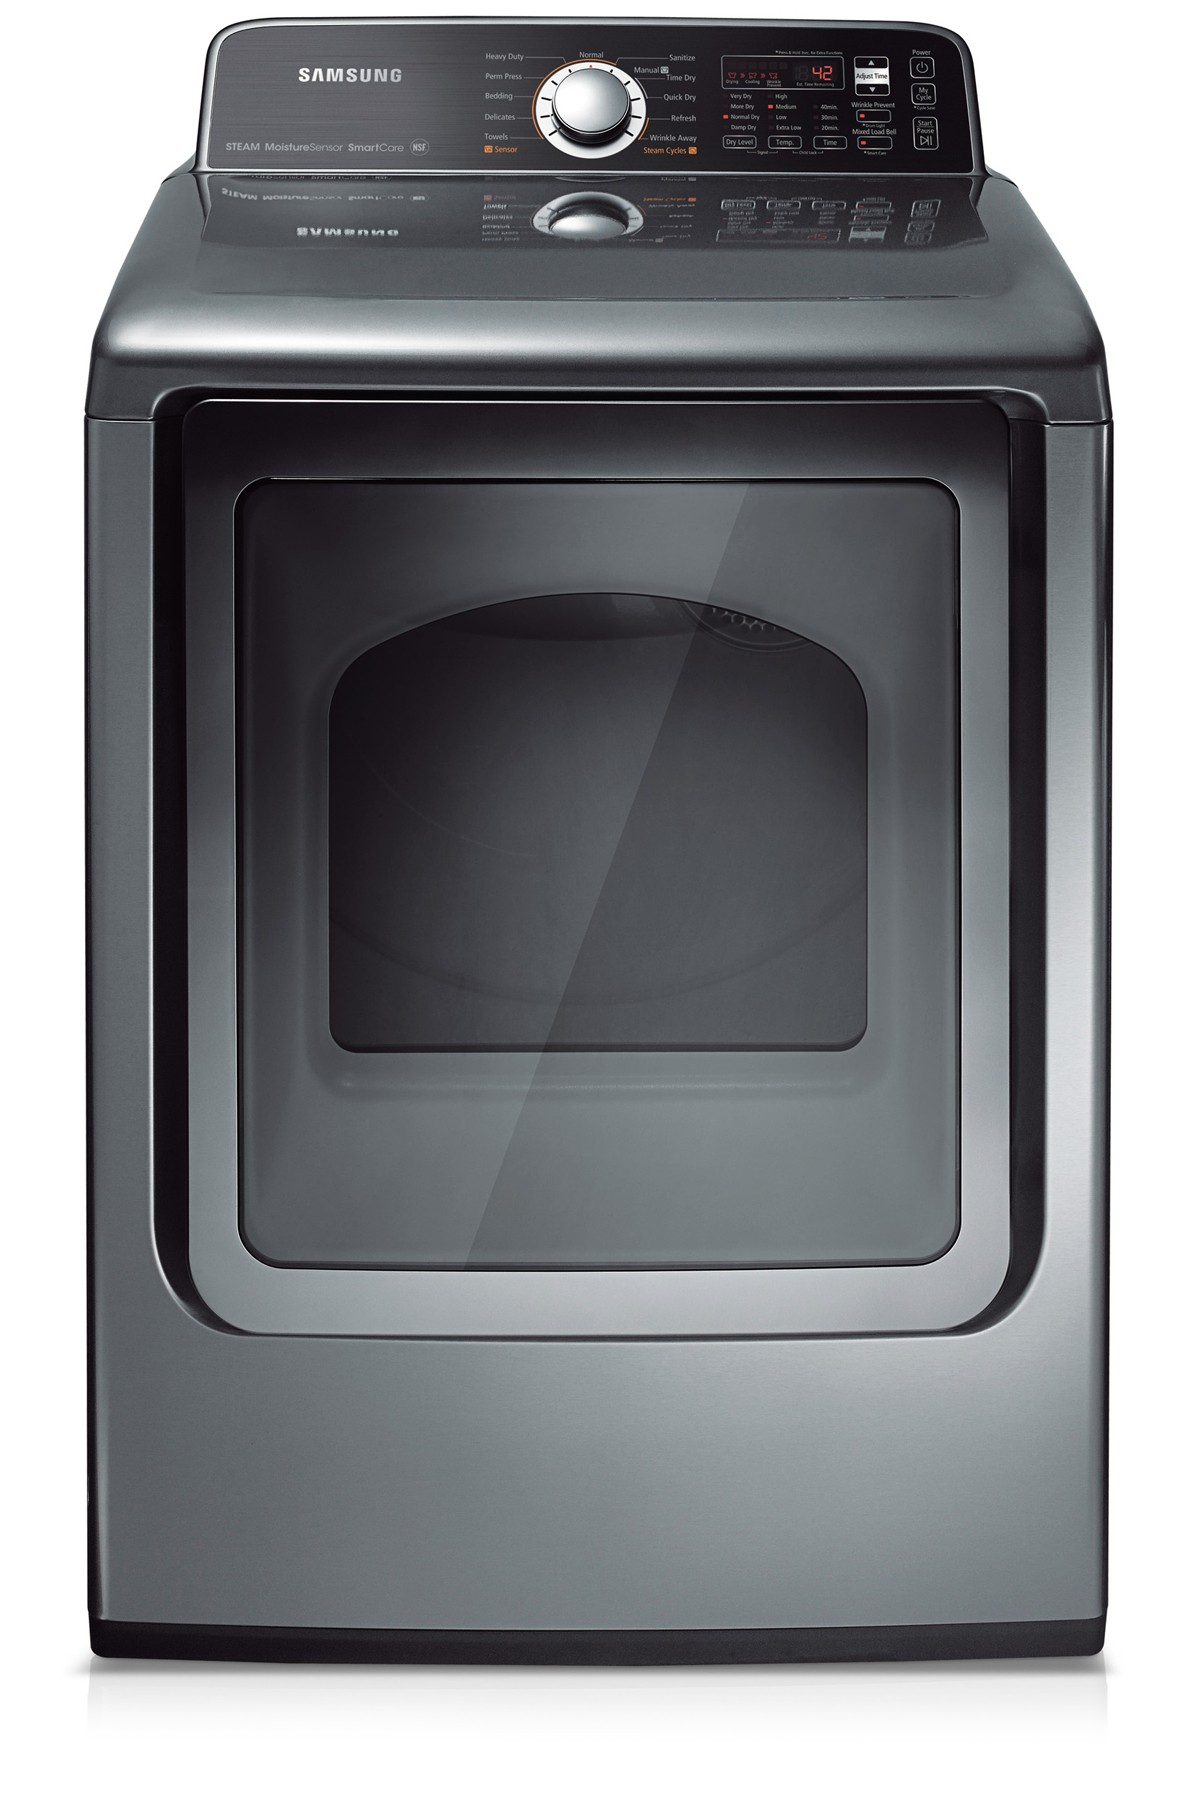 Dv456ethdsu Samsung Dryer Canada Best Price Reviews And